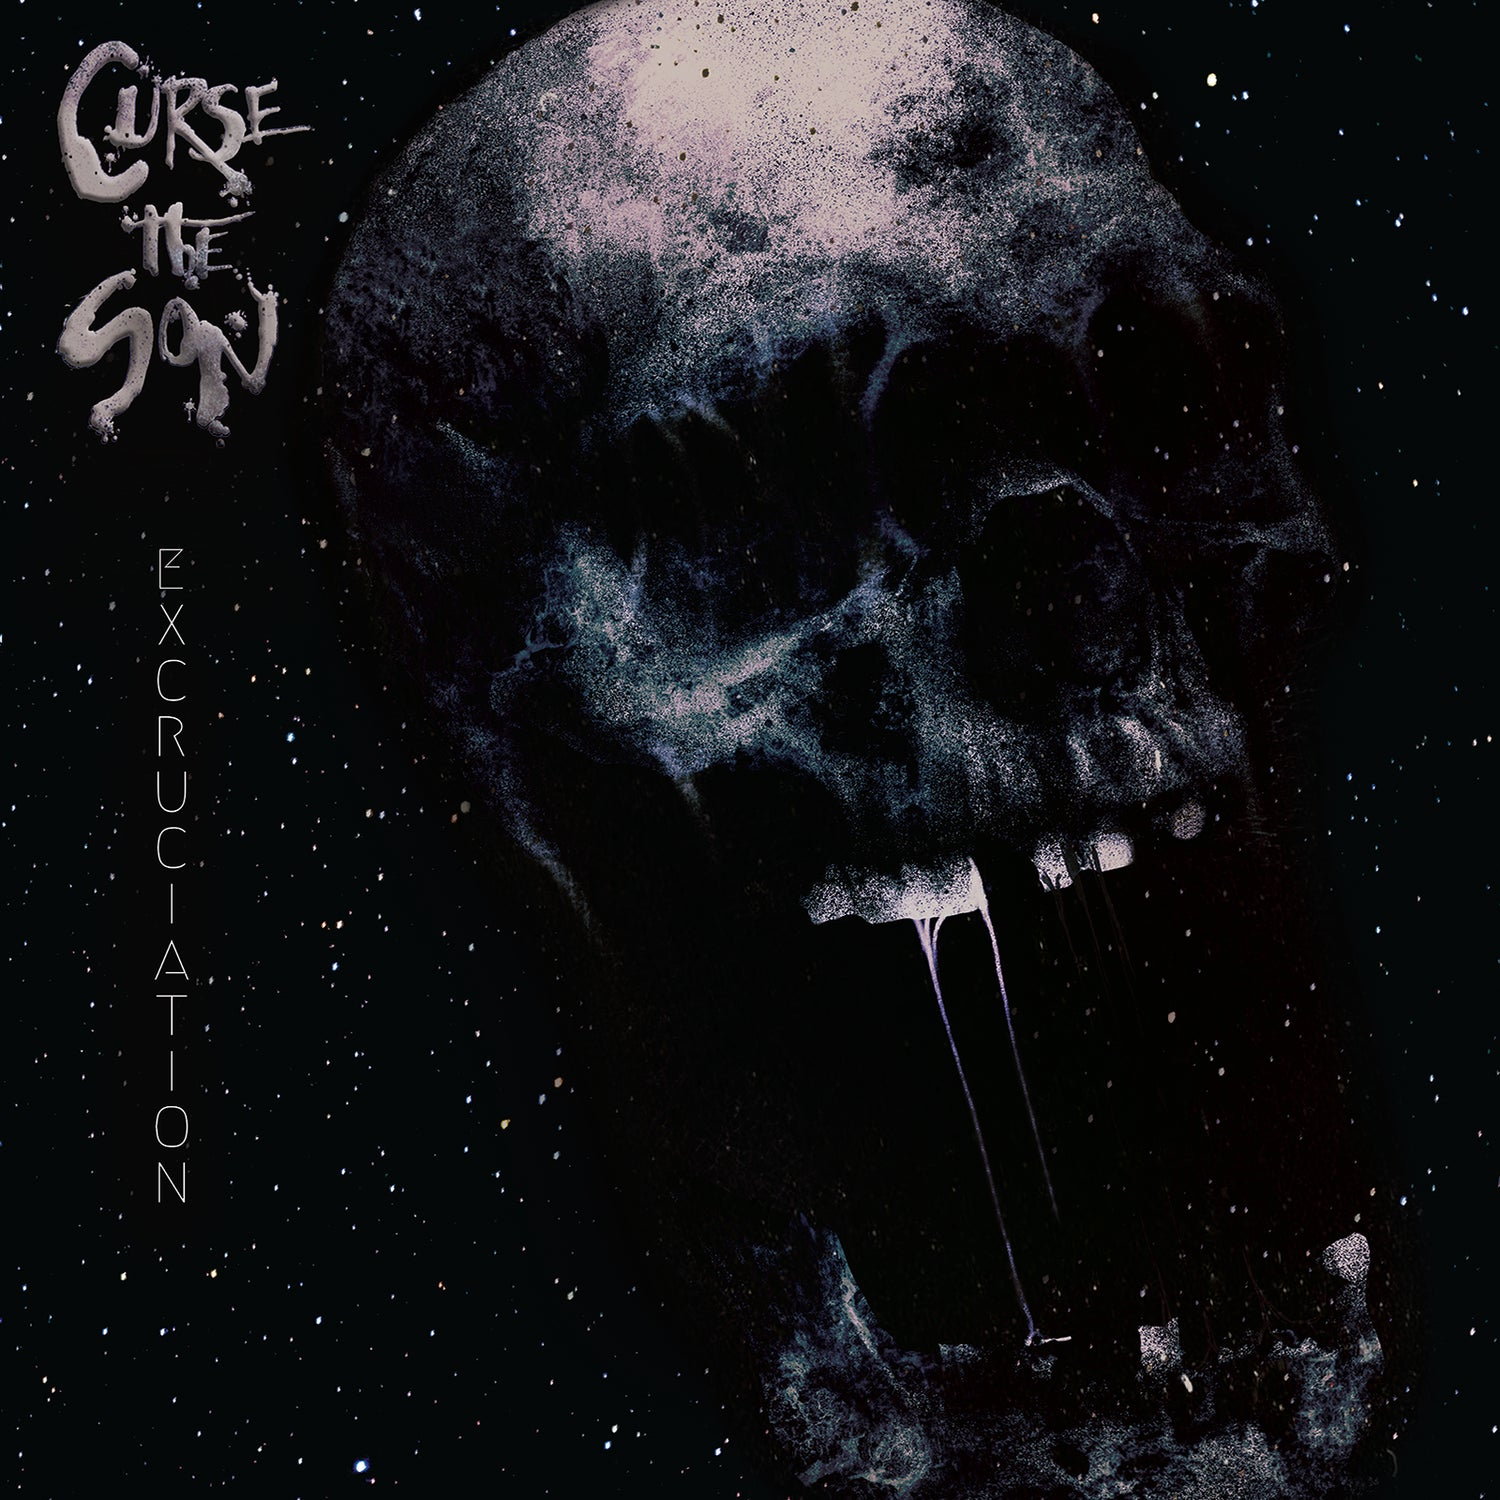 Image of Curse the Son - Excruciation Deluxe Vinyl Editions